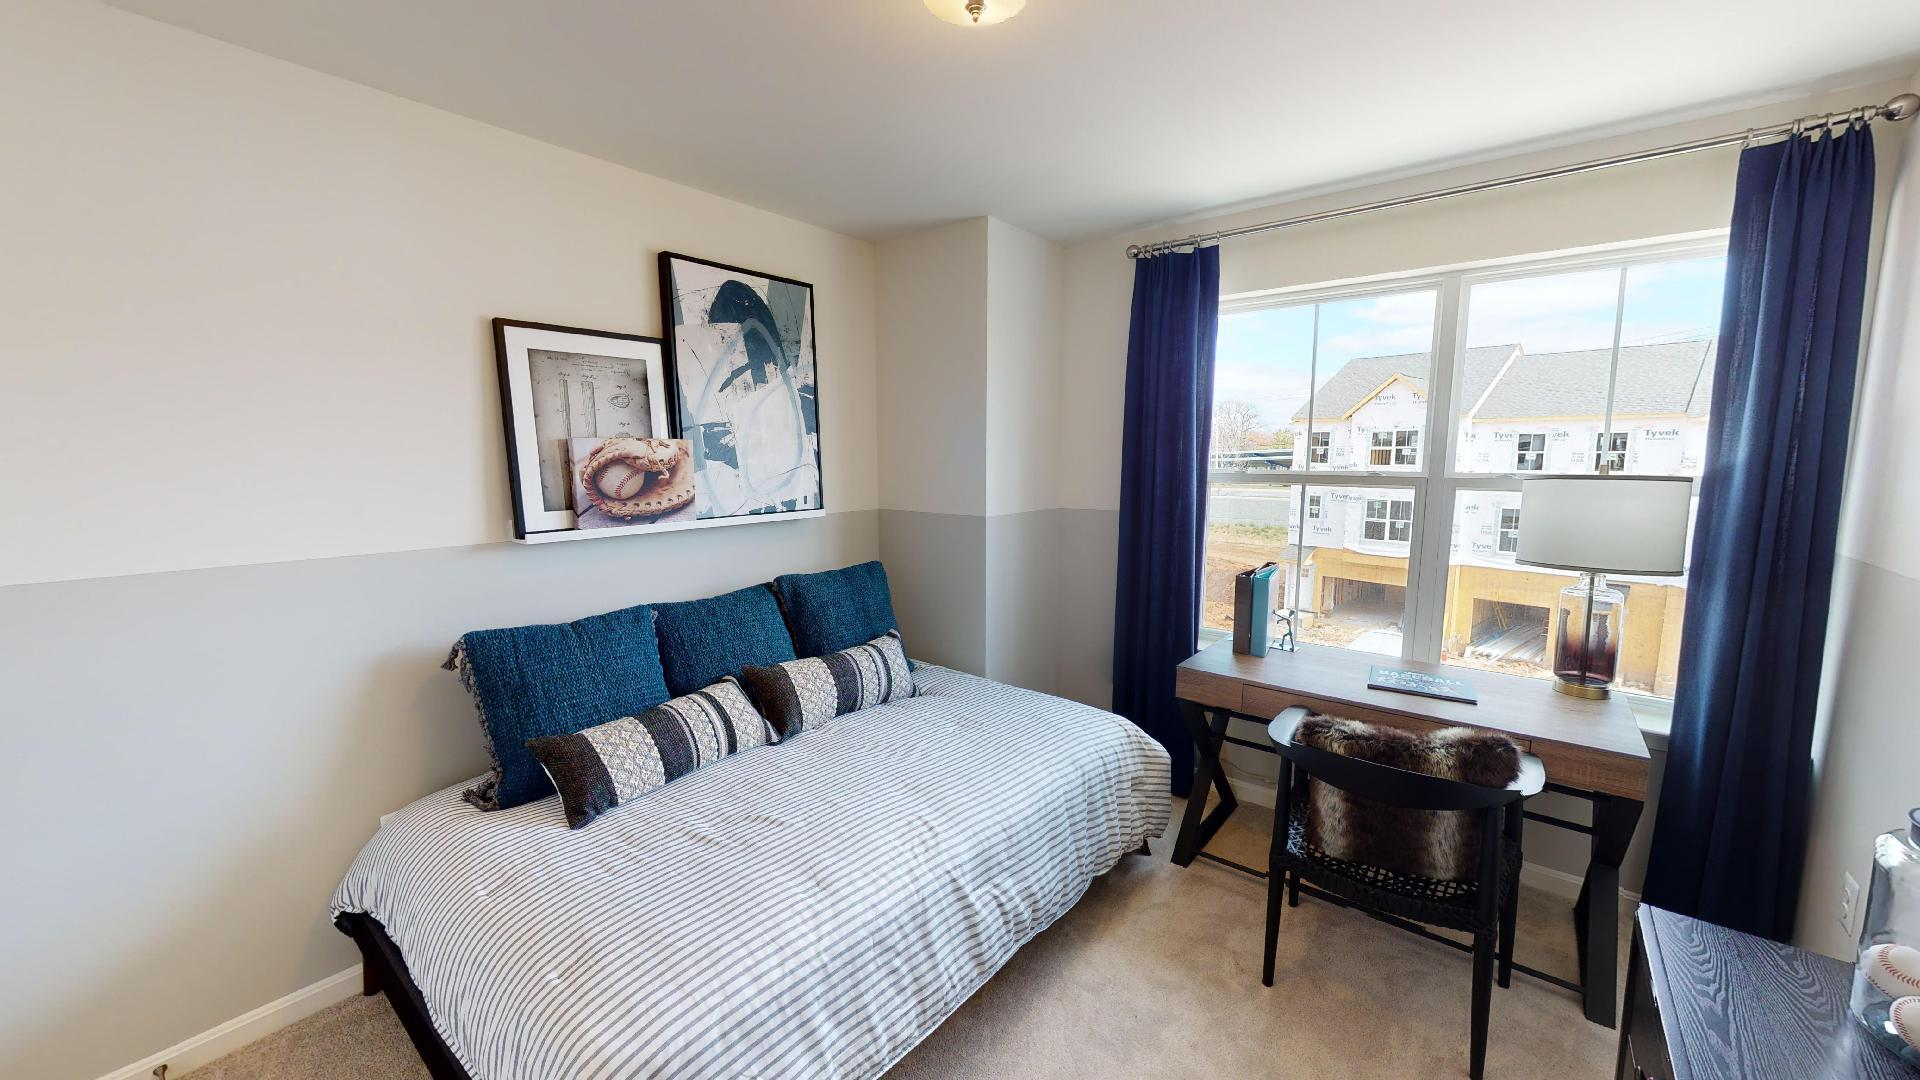 Bedroom featured in the Shana By Sage Homes in Baltimore, MD